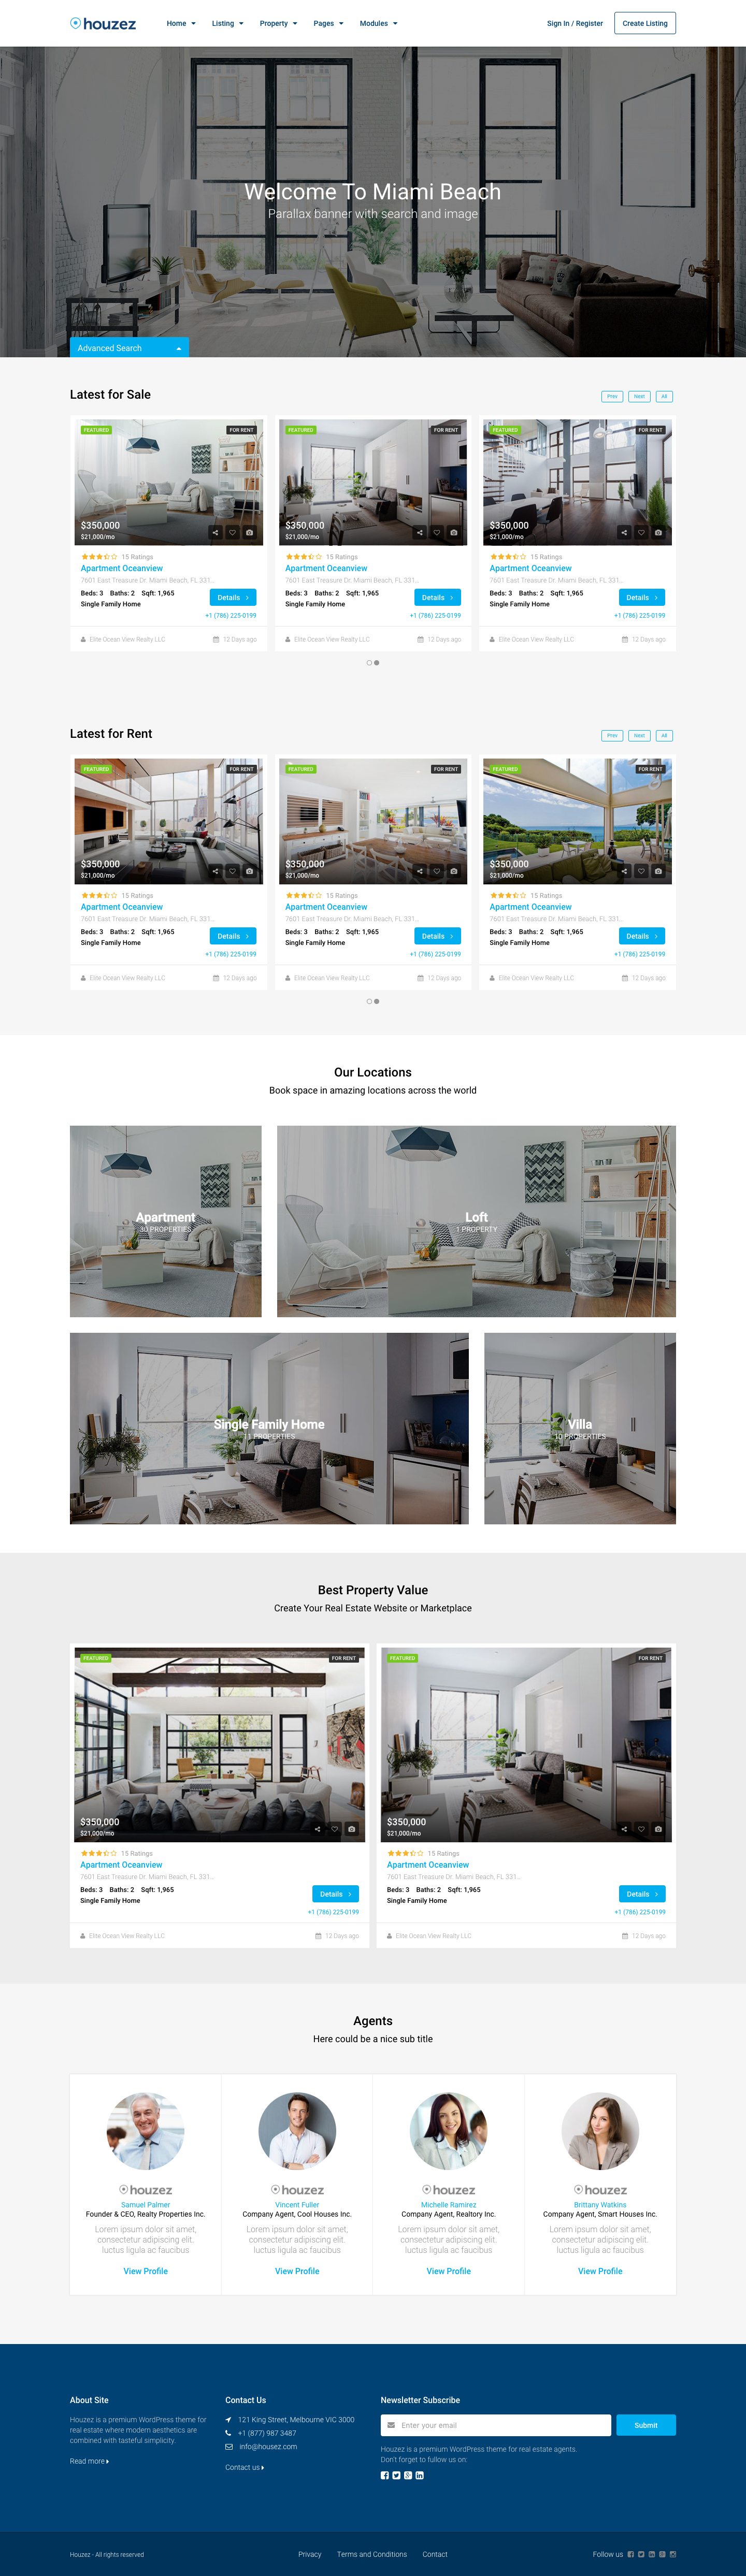 Houzez - Real Estate HTML Template by favethemes | ThemeForest ...